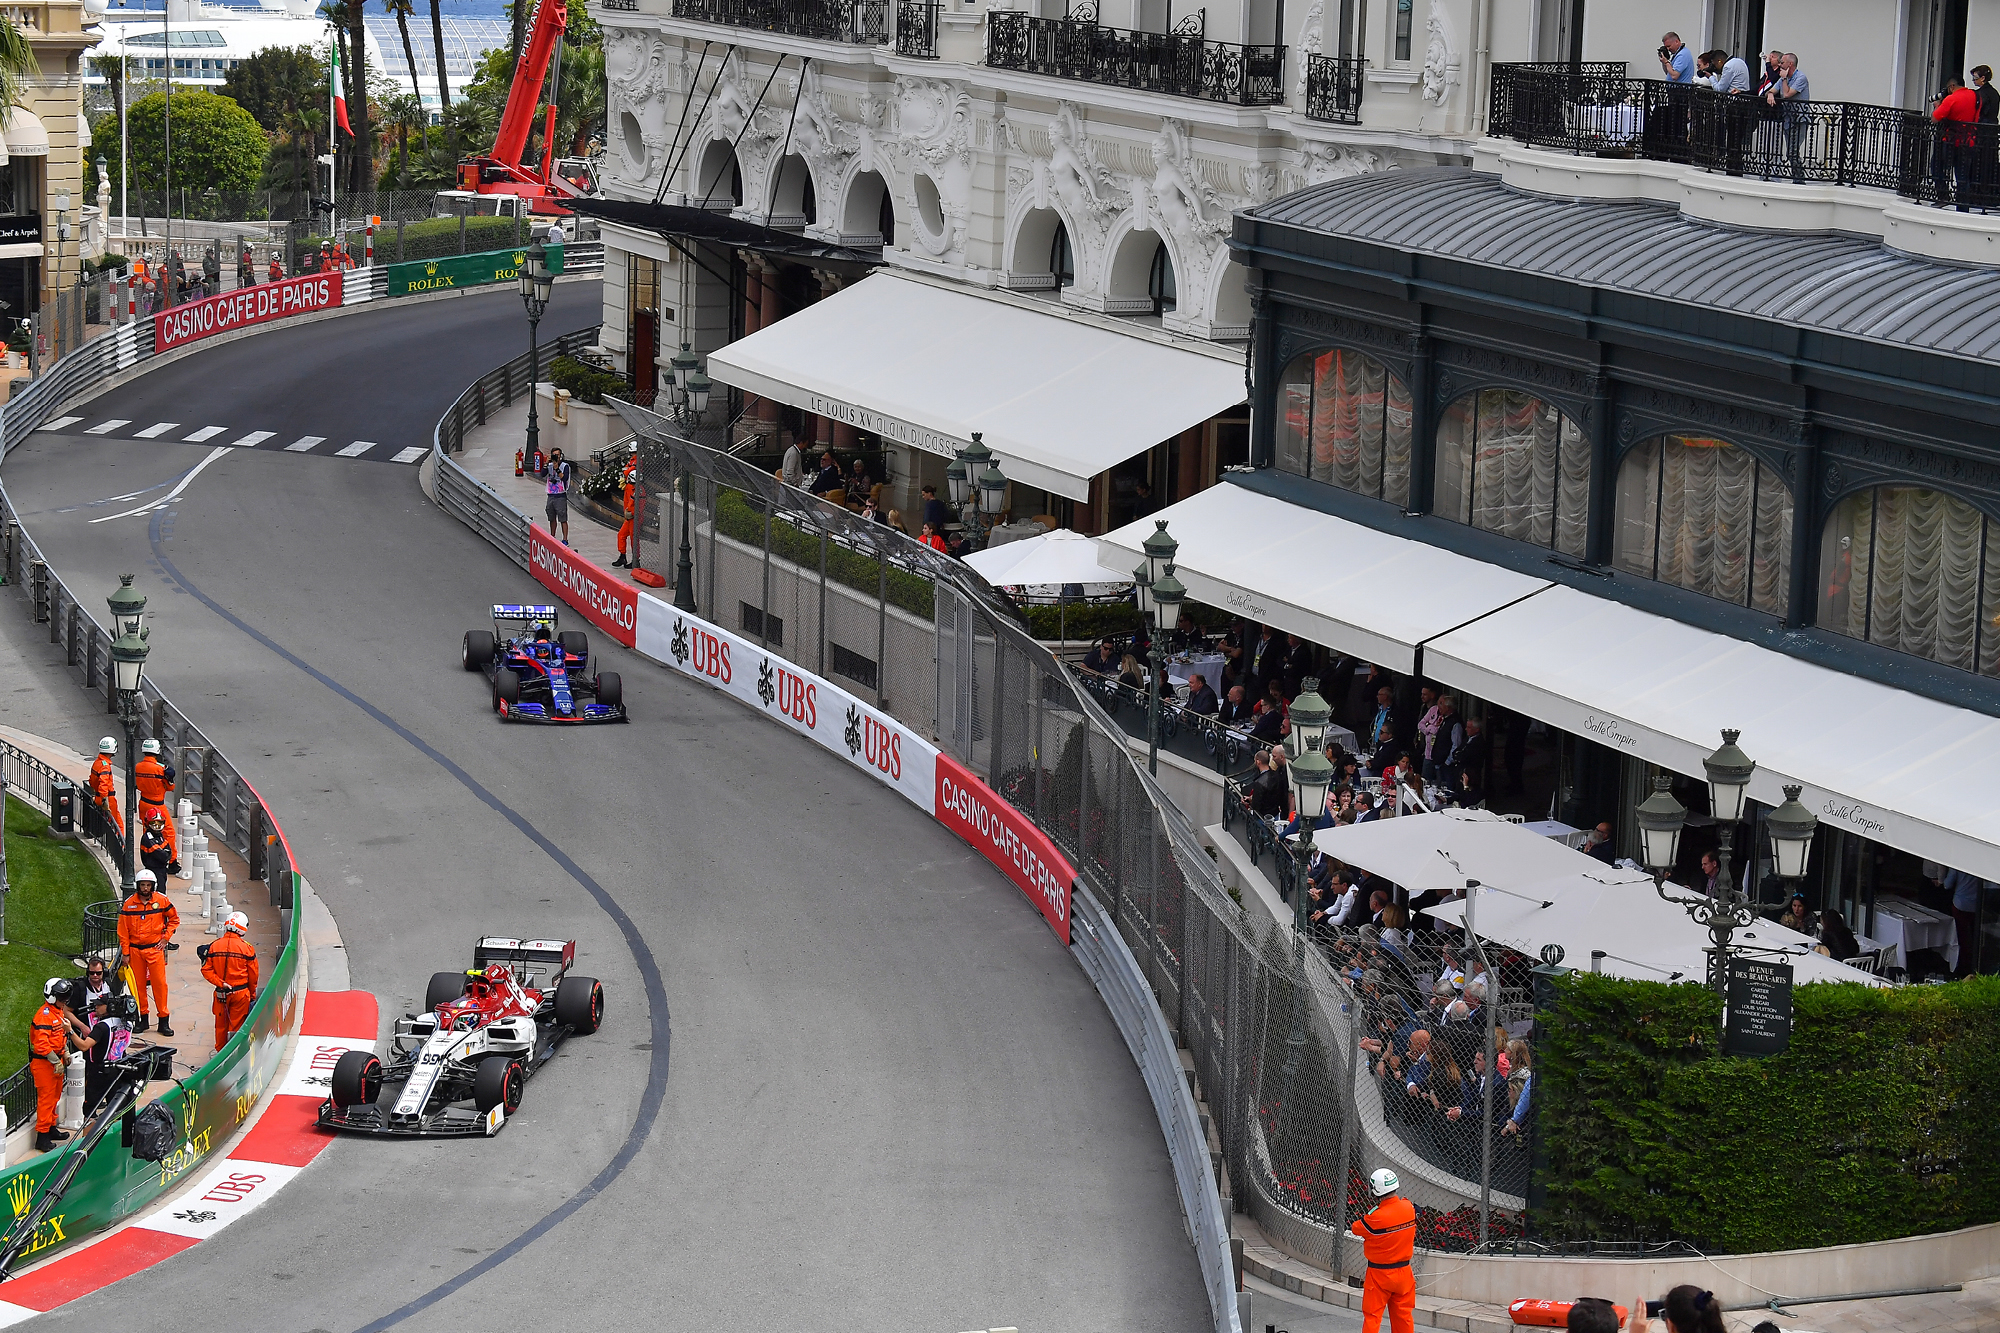 2019 Formula One World Championship happening adjacent to the Hôtel de Paris